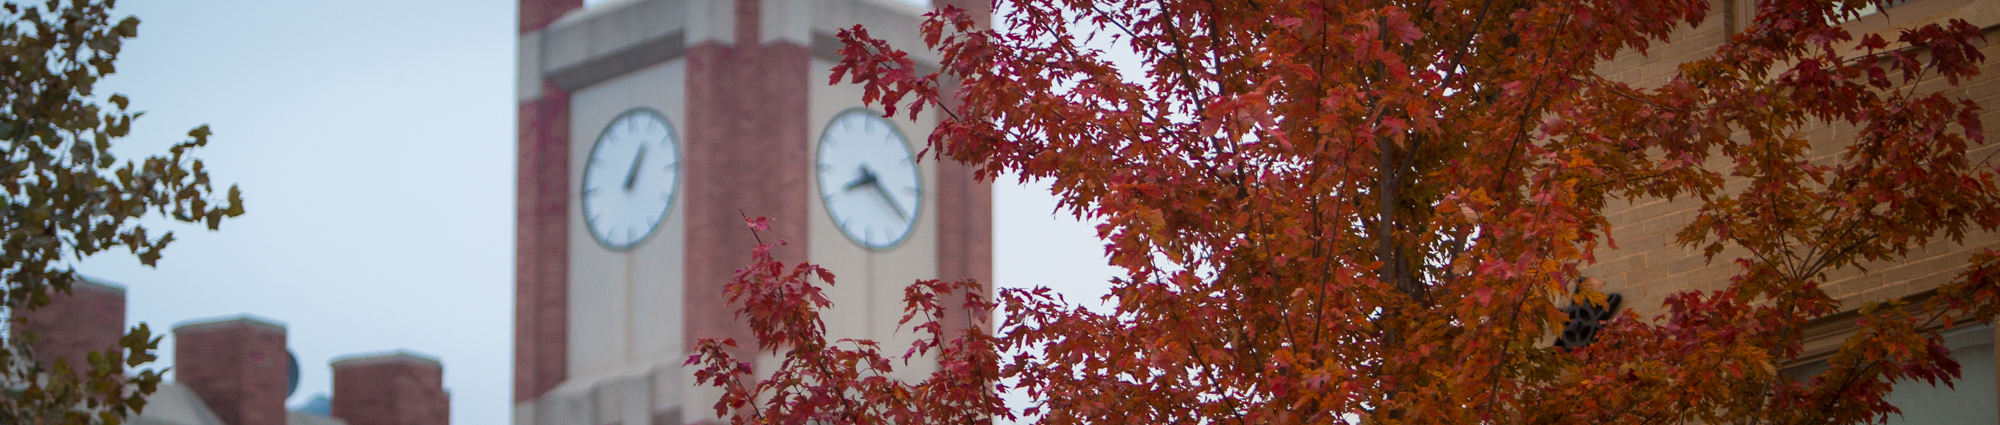 Bizzell clock tower with fall tree